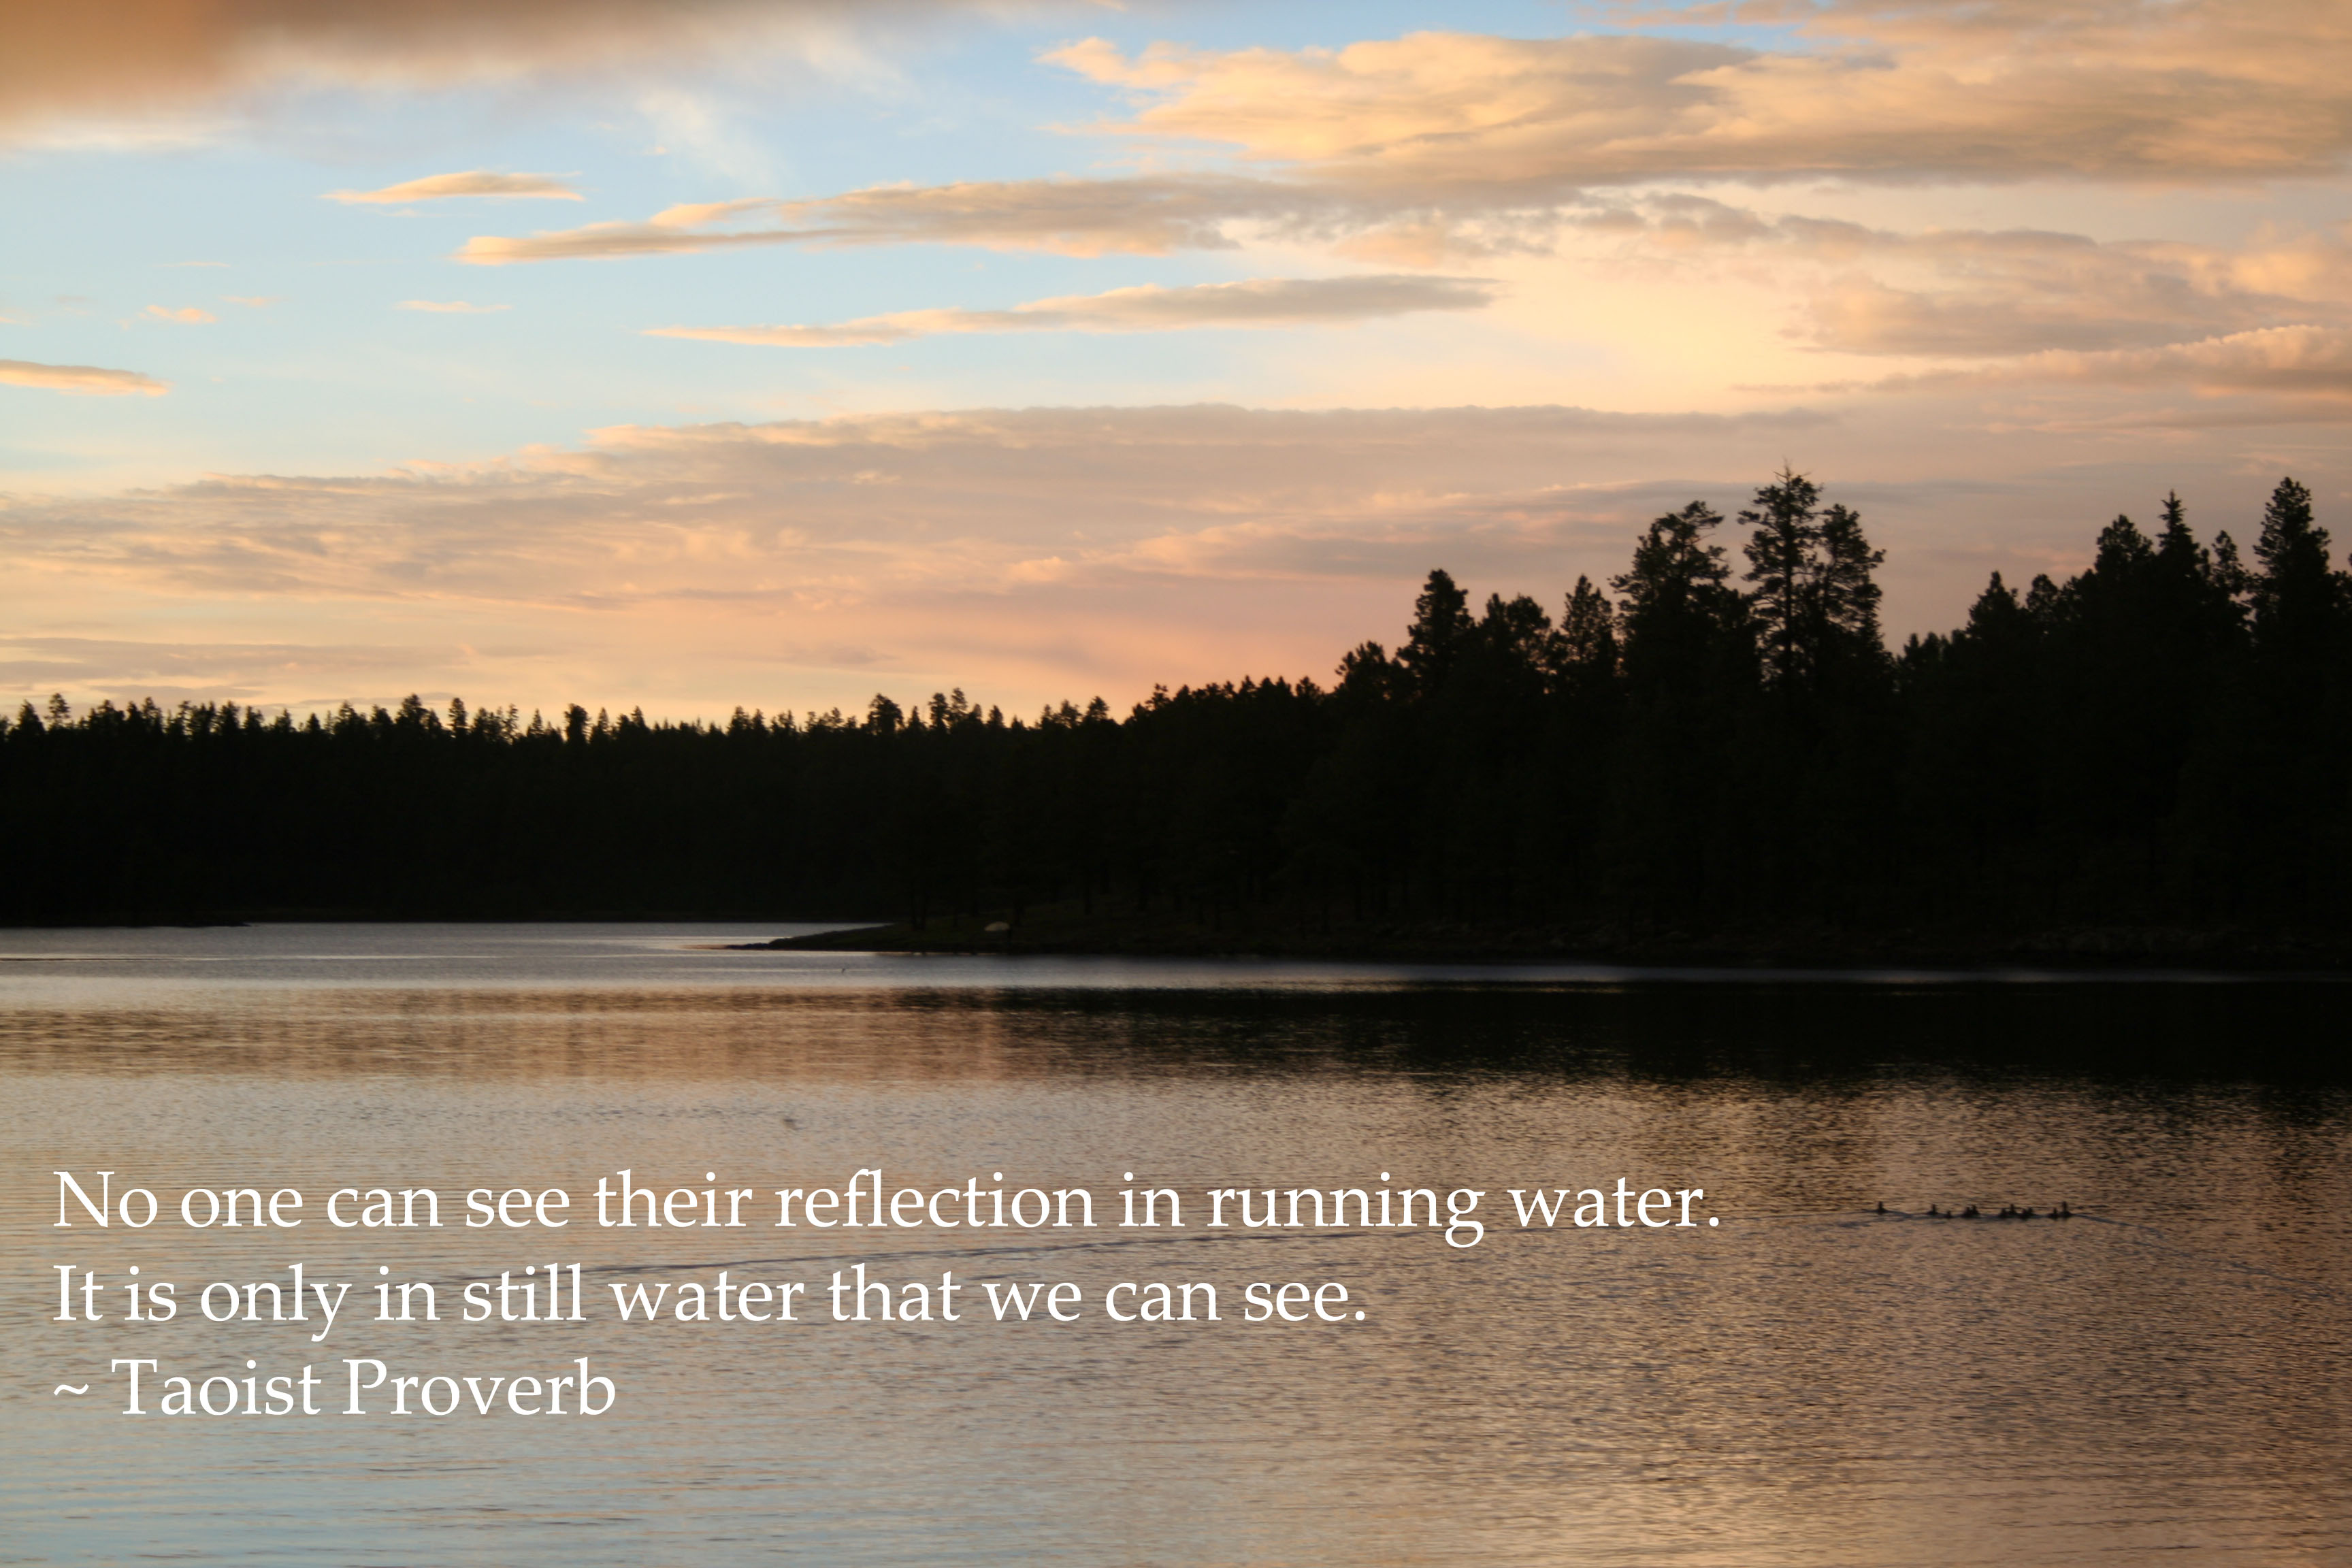 """""""No one can see their reflection in running water. It is only in still water that we can see."""" - Taoist proverb written on photo of lake at sunset."""